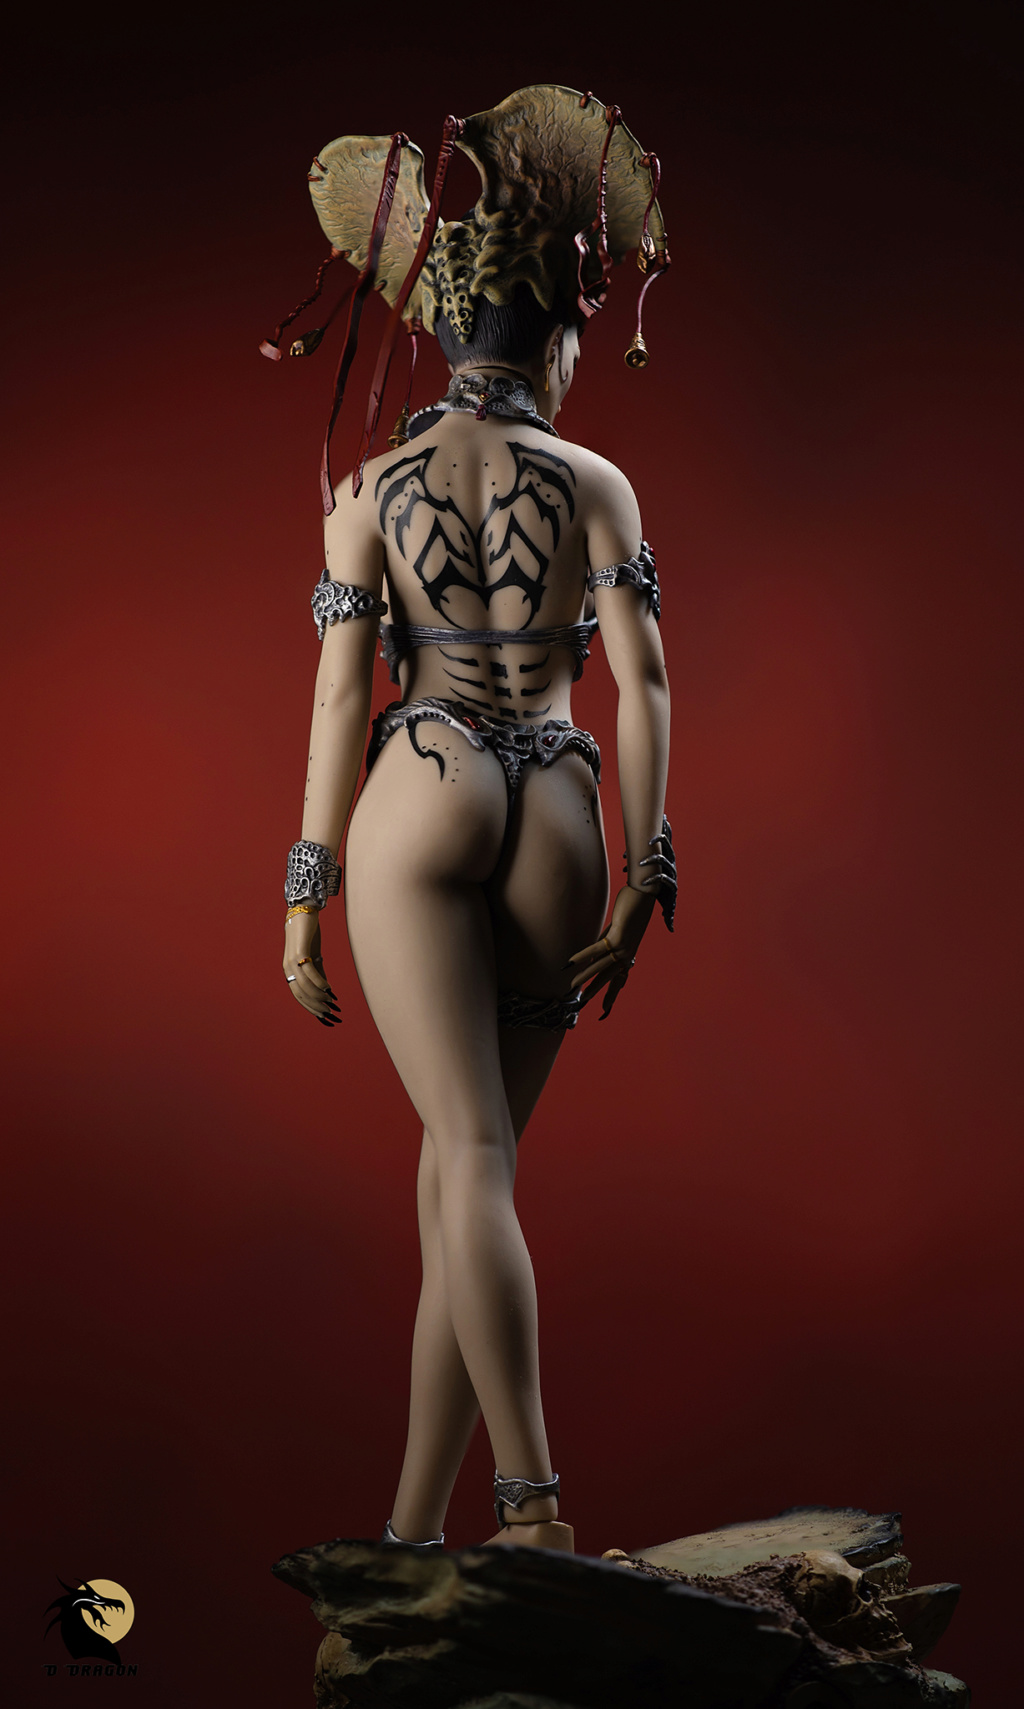 tbleague - NEW PRODUCT: Tbleague x SIDESHOW New: 1/6 Court of the Dead: Gethsemoni The Dead Queen action figure (PL2019-147) - Page 2 Gethse22